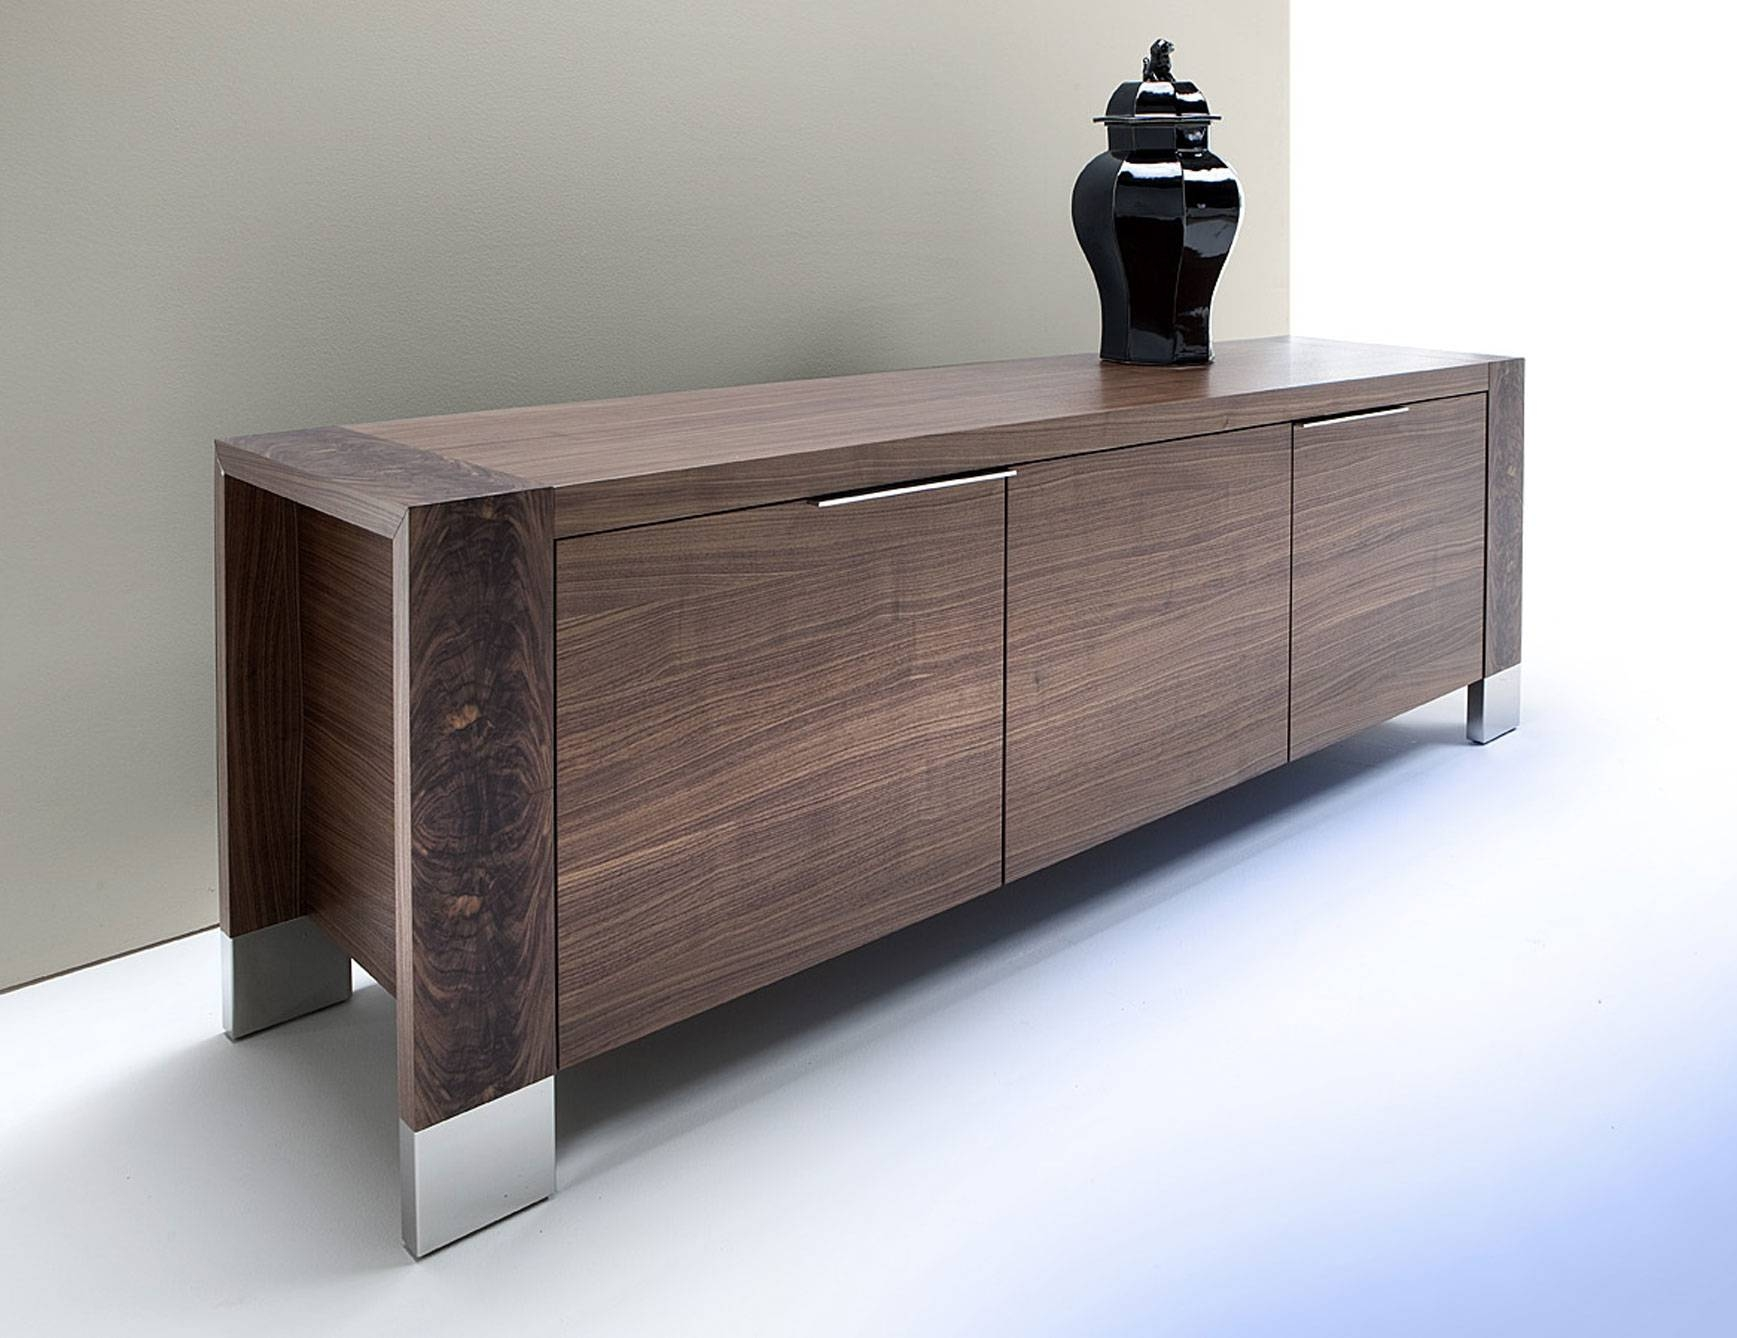 15 photo of modern buffet sideboard cabinets. Black Bedroom Furniture Sets. Home Design Ideas